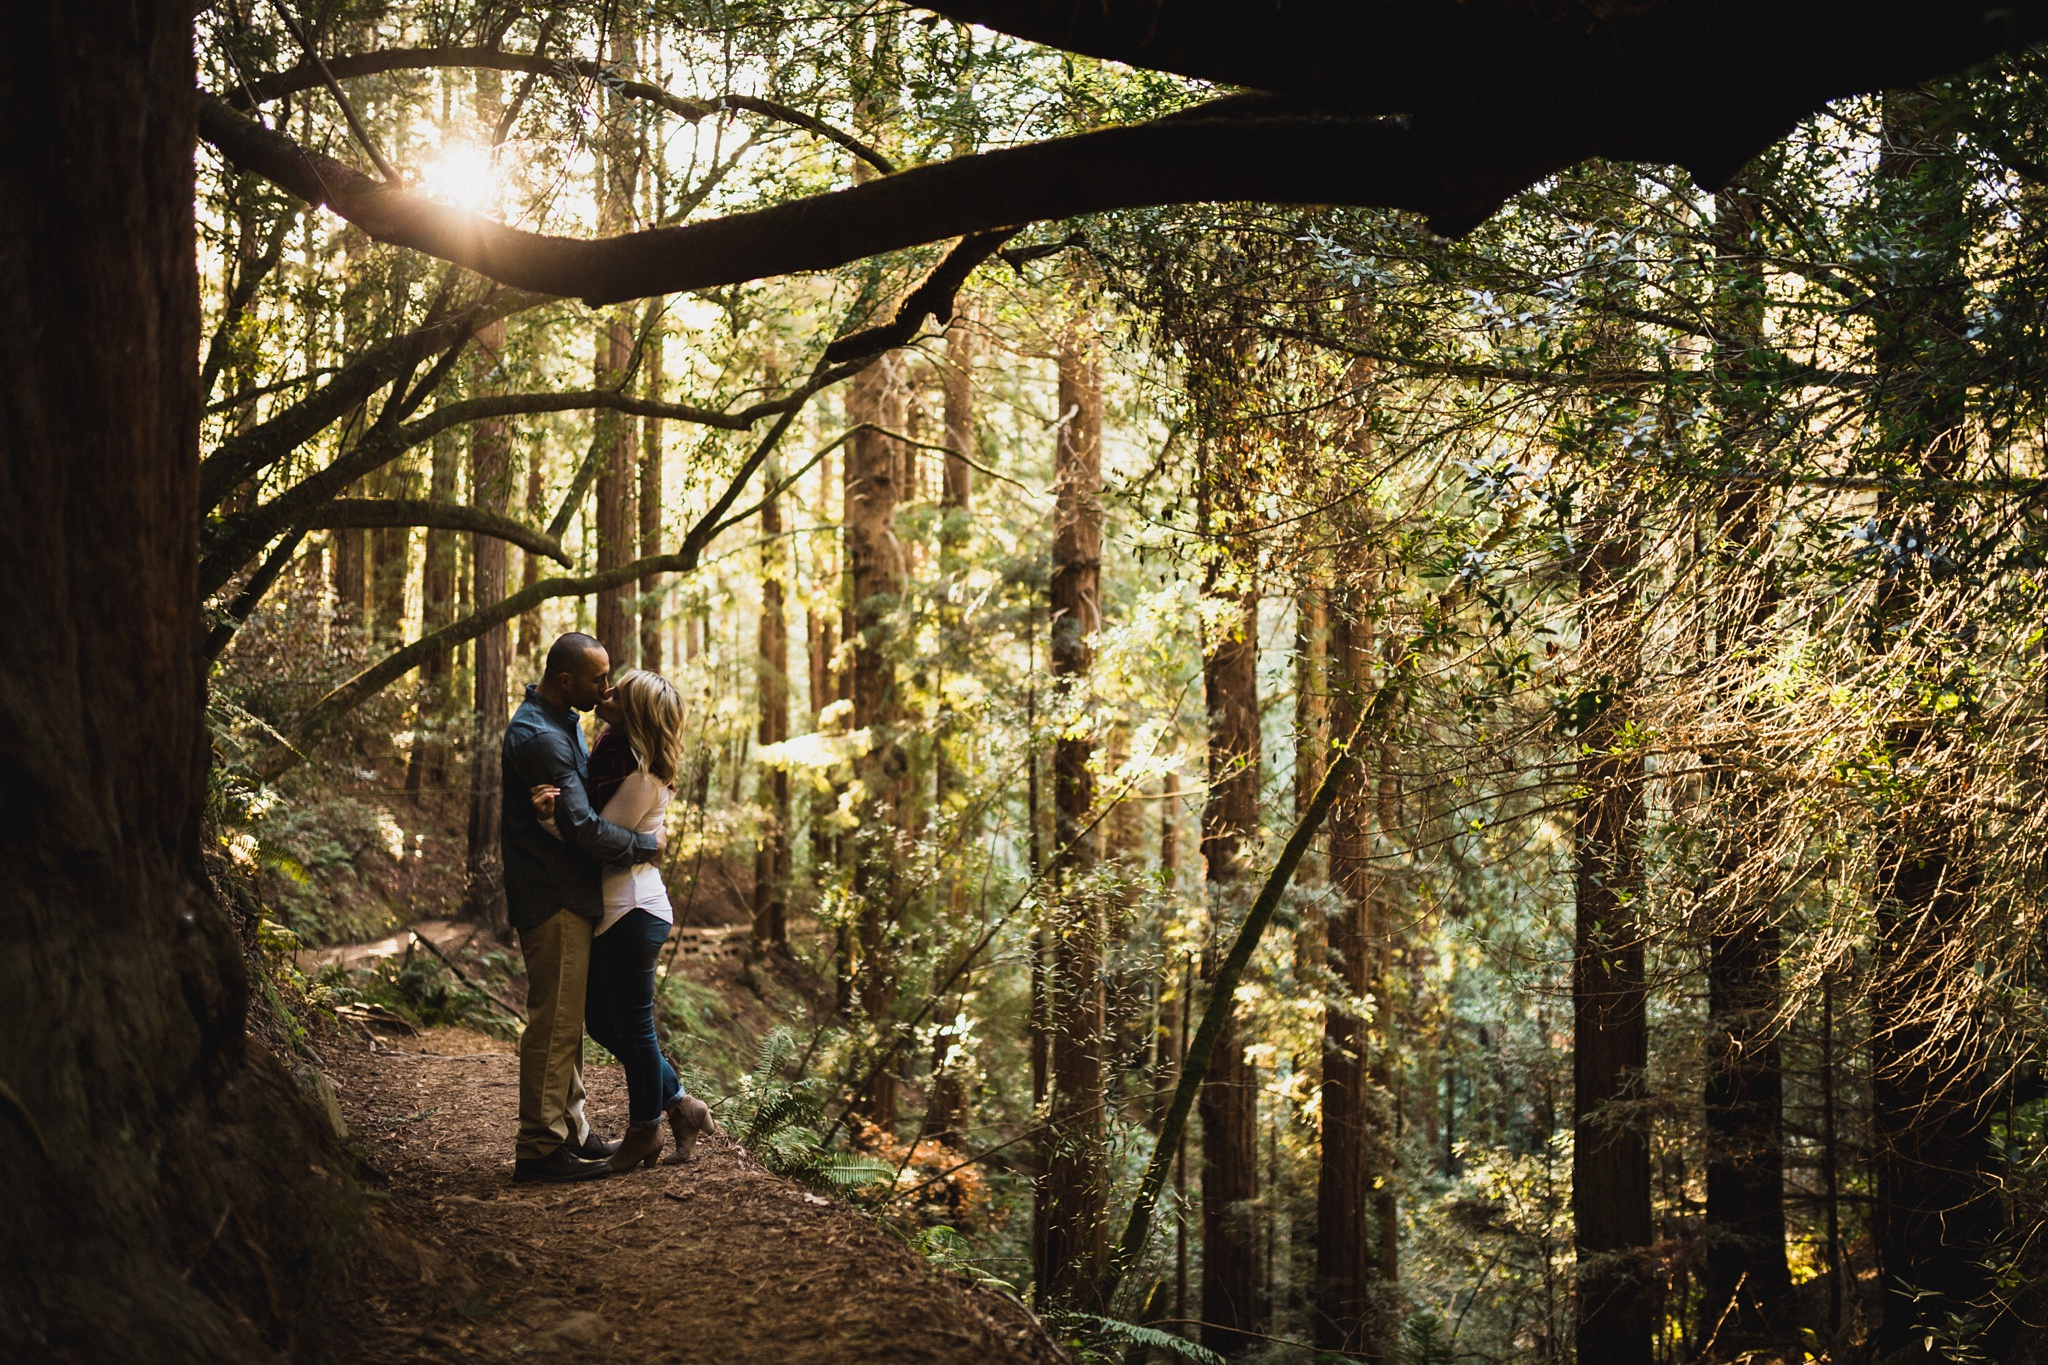 180211_engagement_muir_woods_mill_valley_california_danielle_alysse_photography_164_WEB.jpg